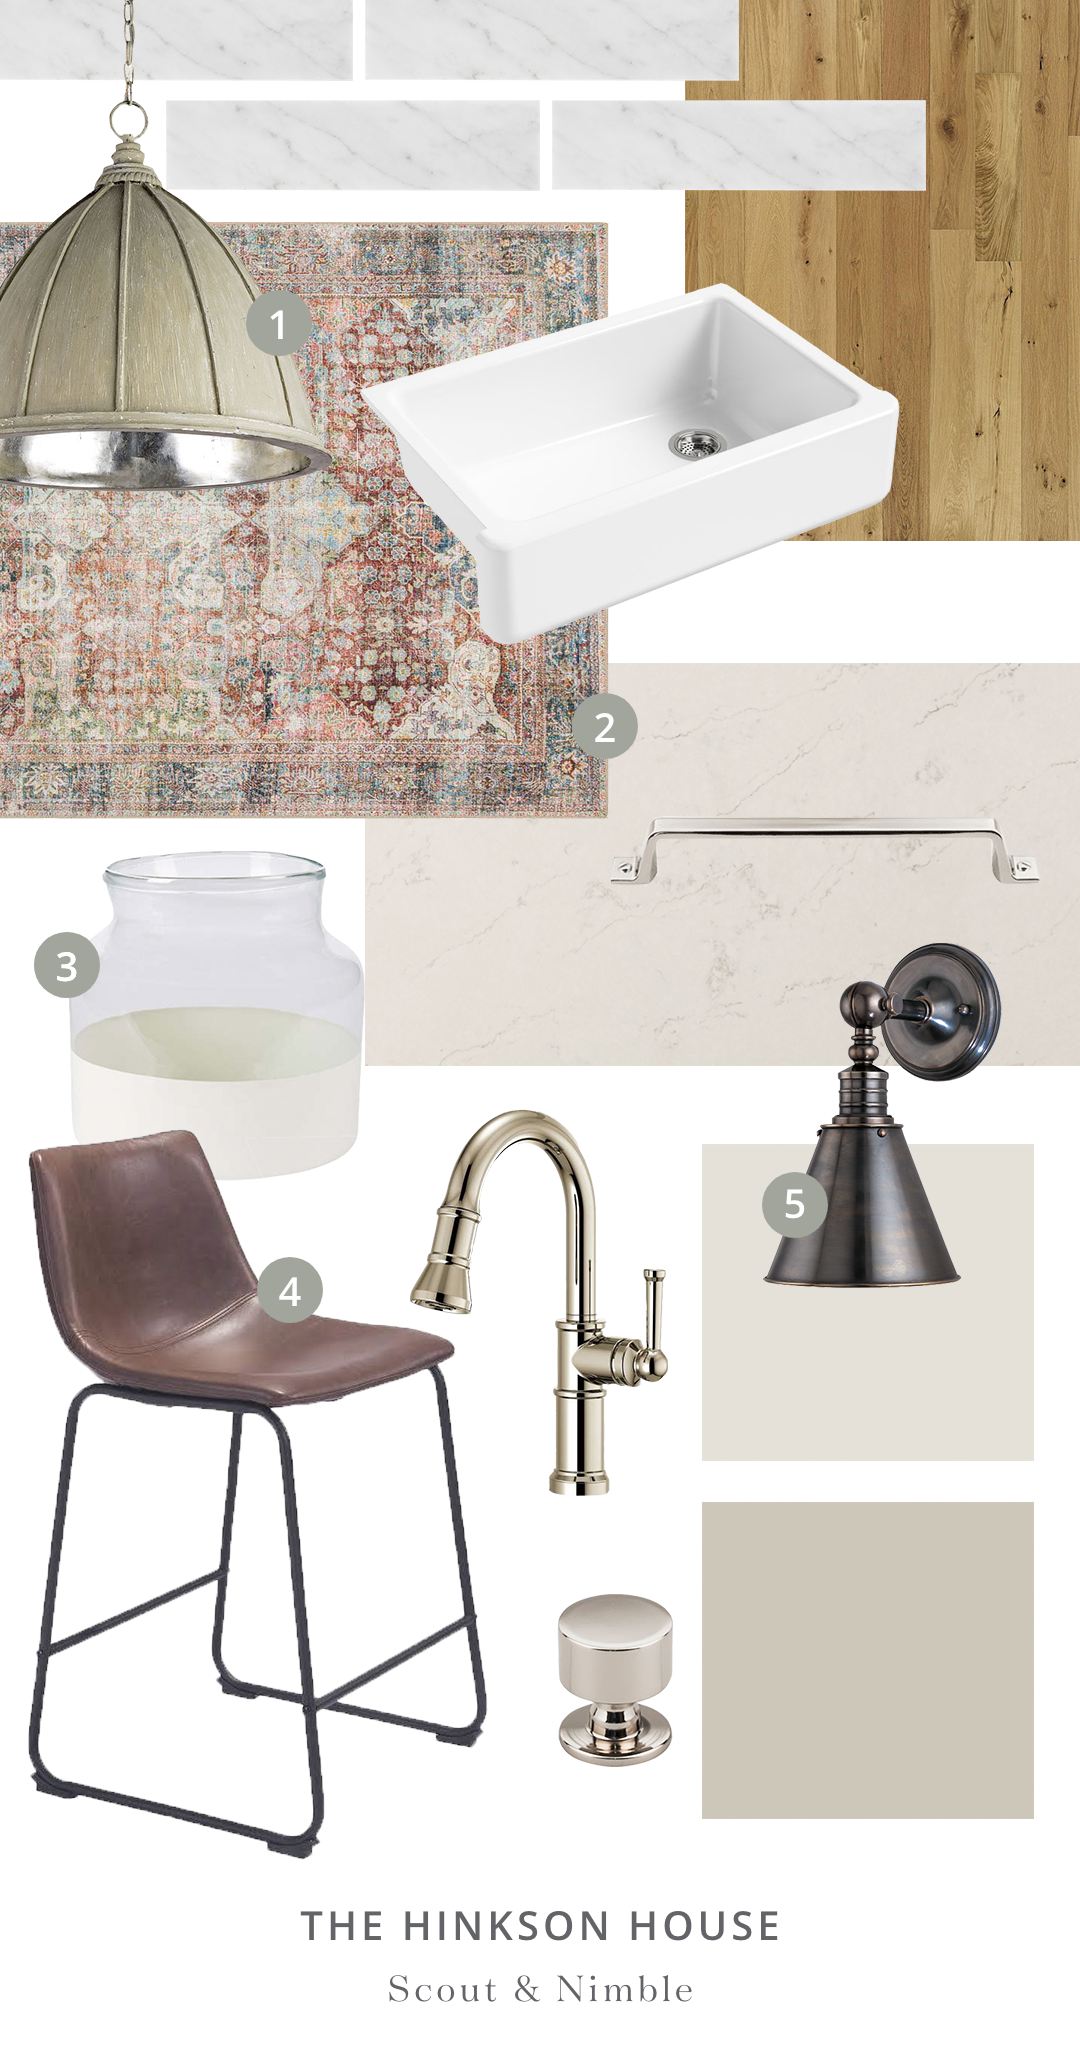 SHOP THE ROOM    |  1.    Fenchurch Pendant  2.  Loren Rug Brick/Multi  3.  White Color Block Flower Vase  4.  Smart Counter Stool  4.  Darien Wall Sconce